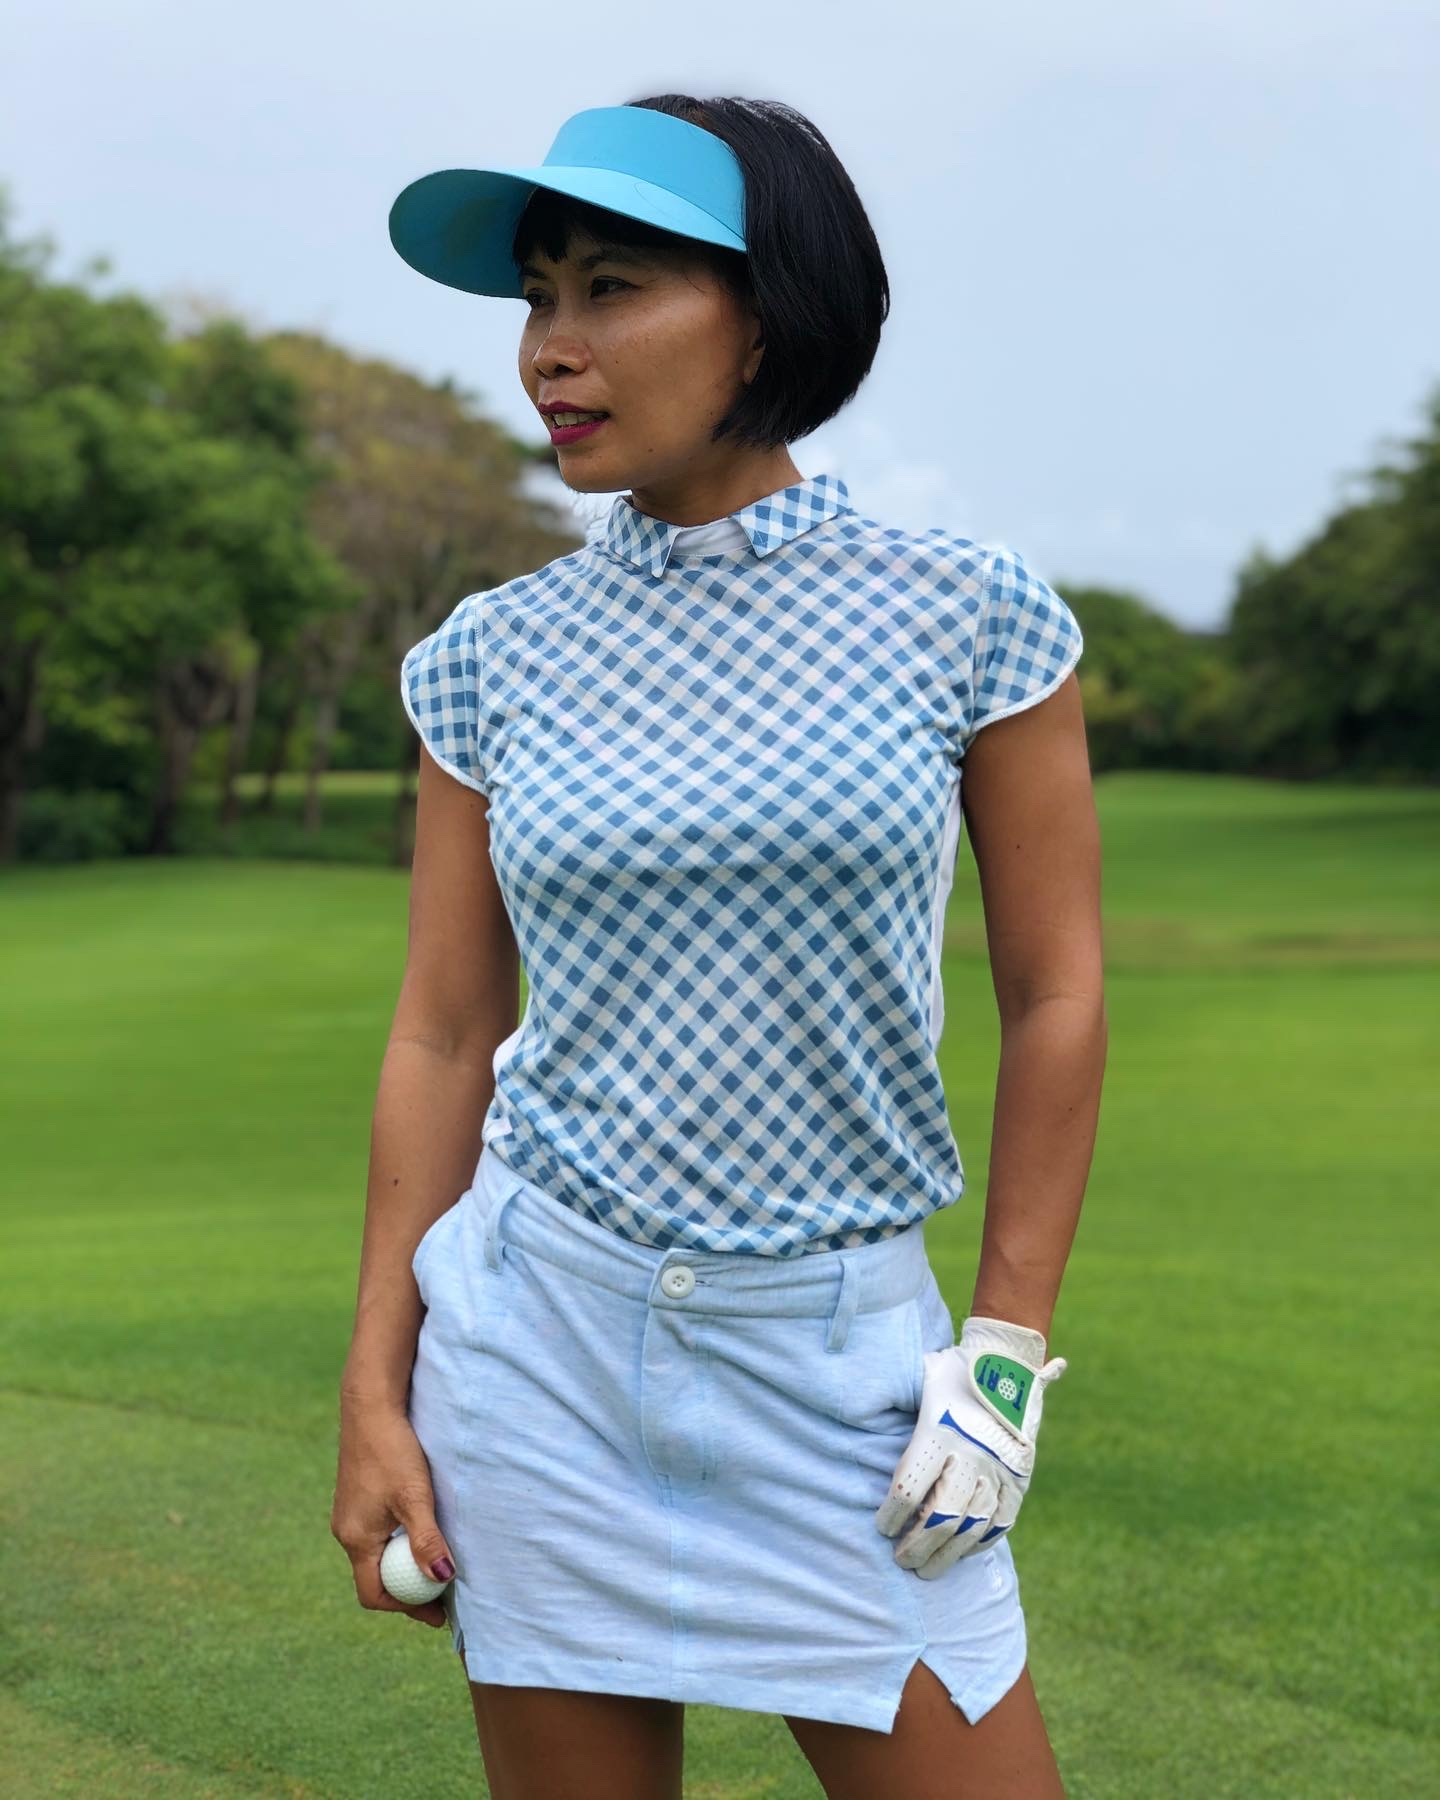 Women's Golf Clothes Golf T Shirt Short-Sleeve Polo